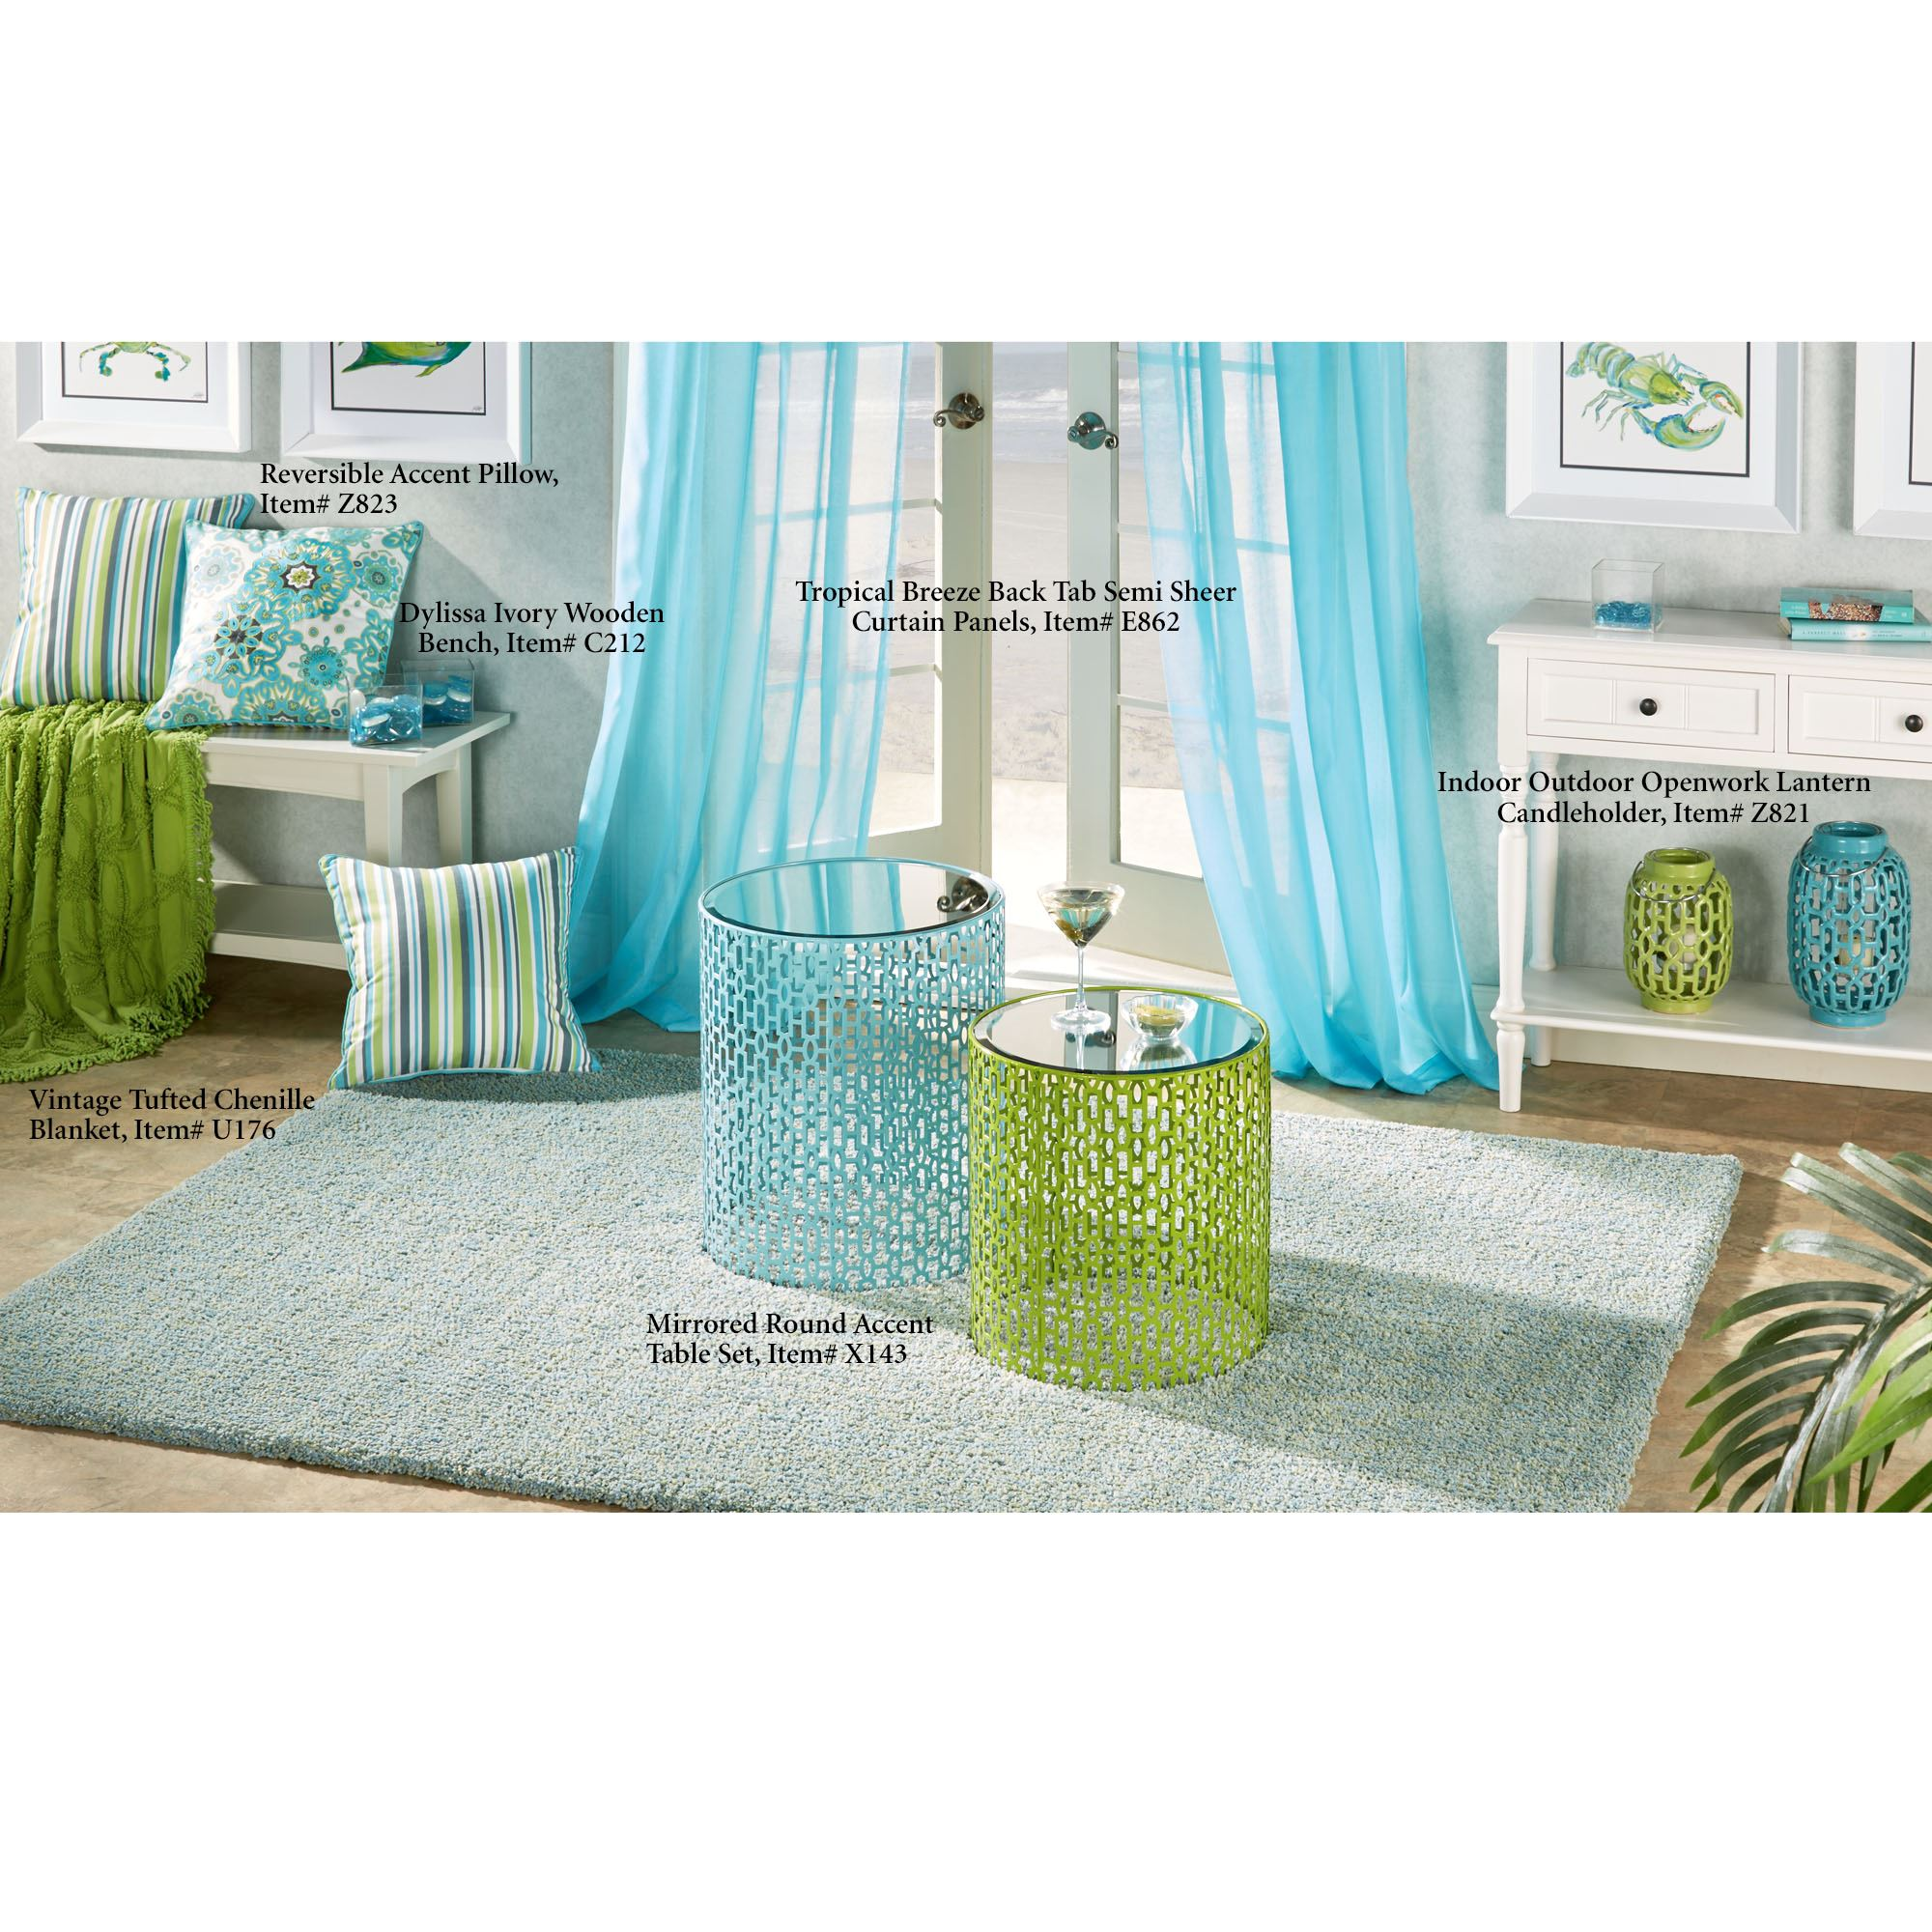 curtains amazing room sailboats glamorous living shower home decor of ideas coastal and tropical lights curtain sparkley